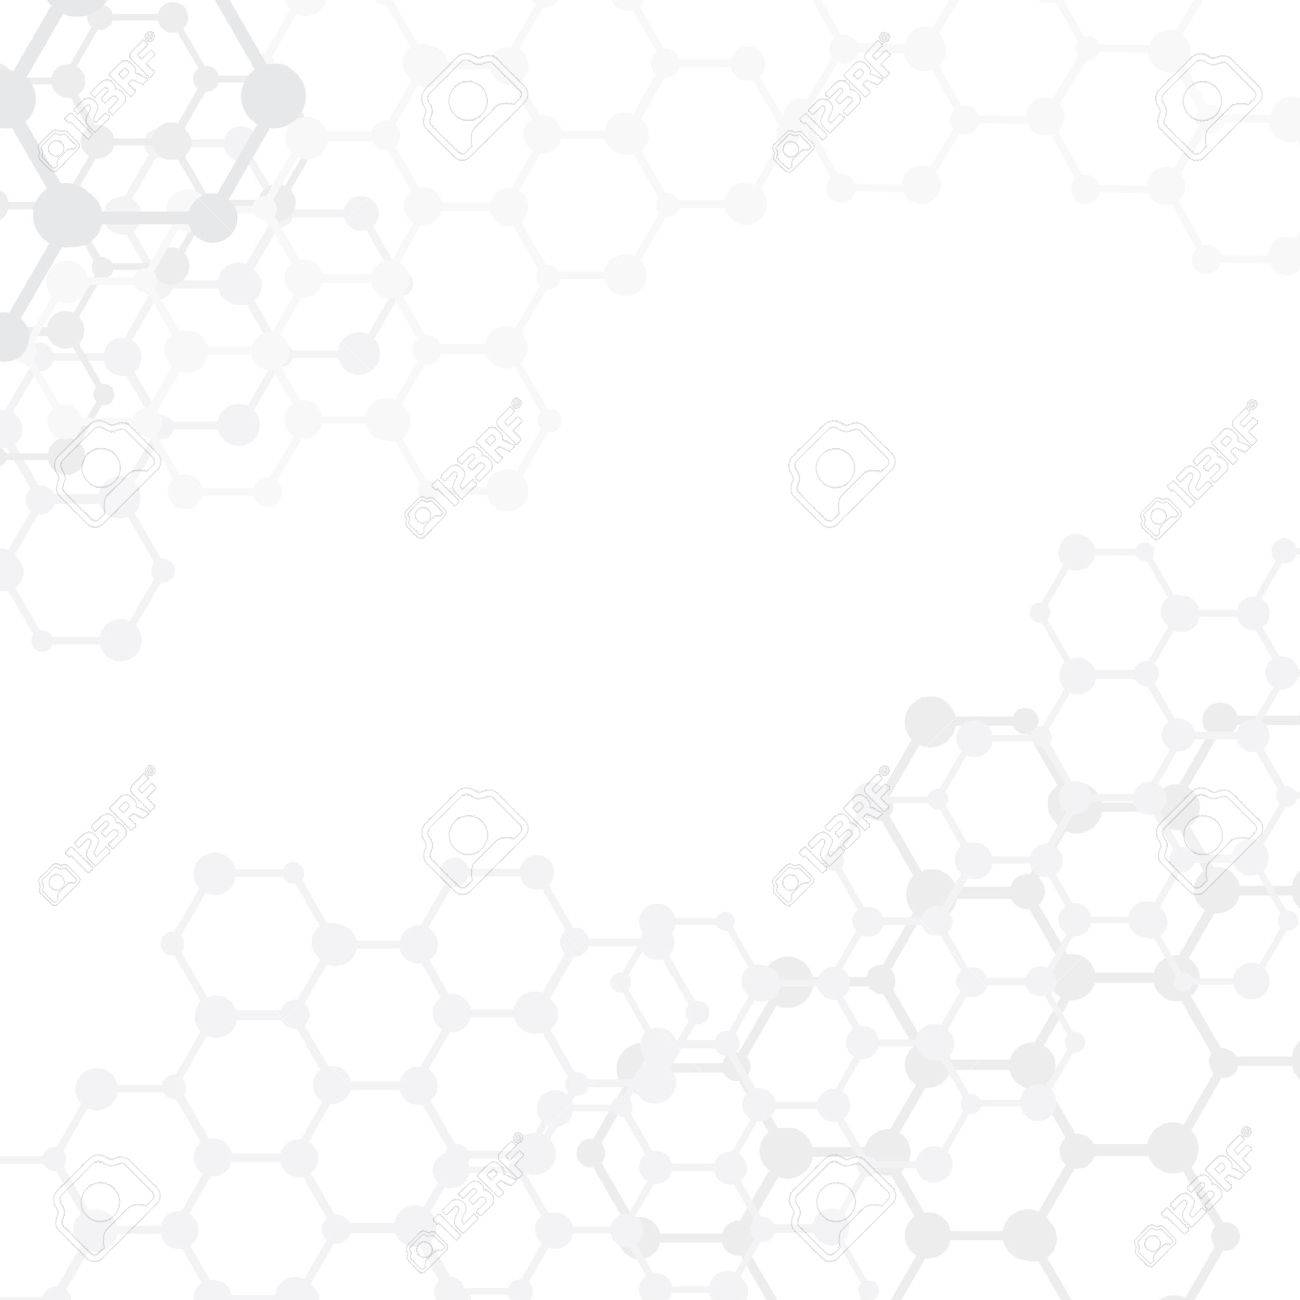 Abstract molecules medical with copy space (vector illustration) - 25496115